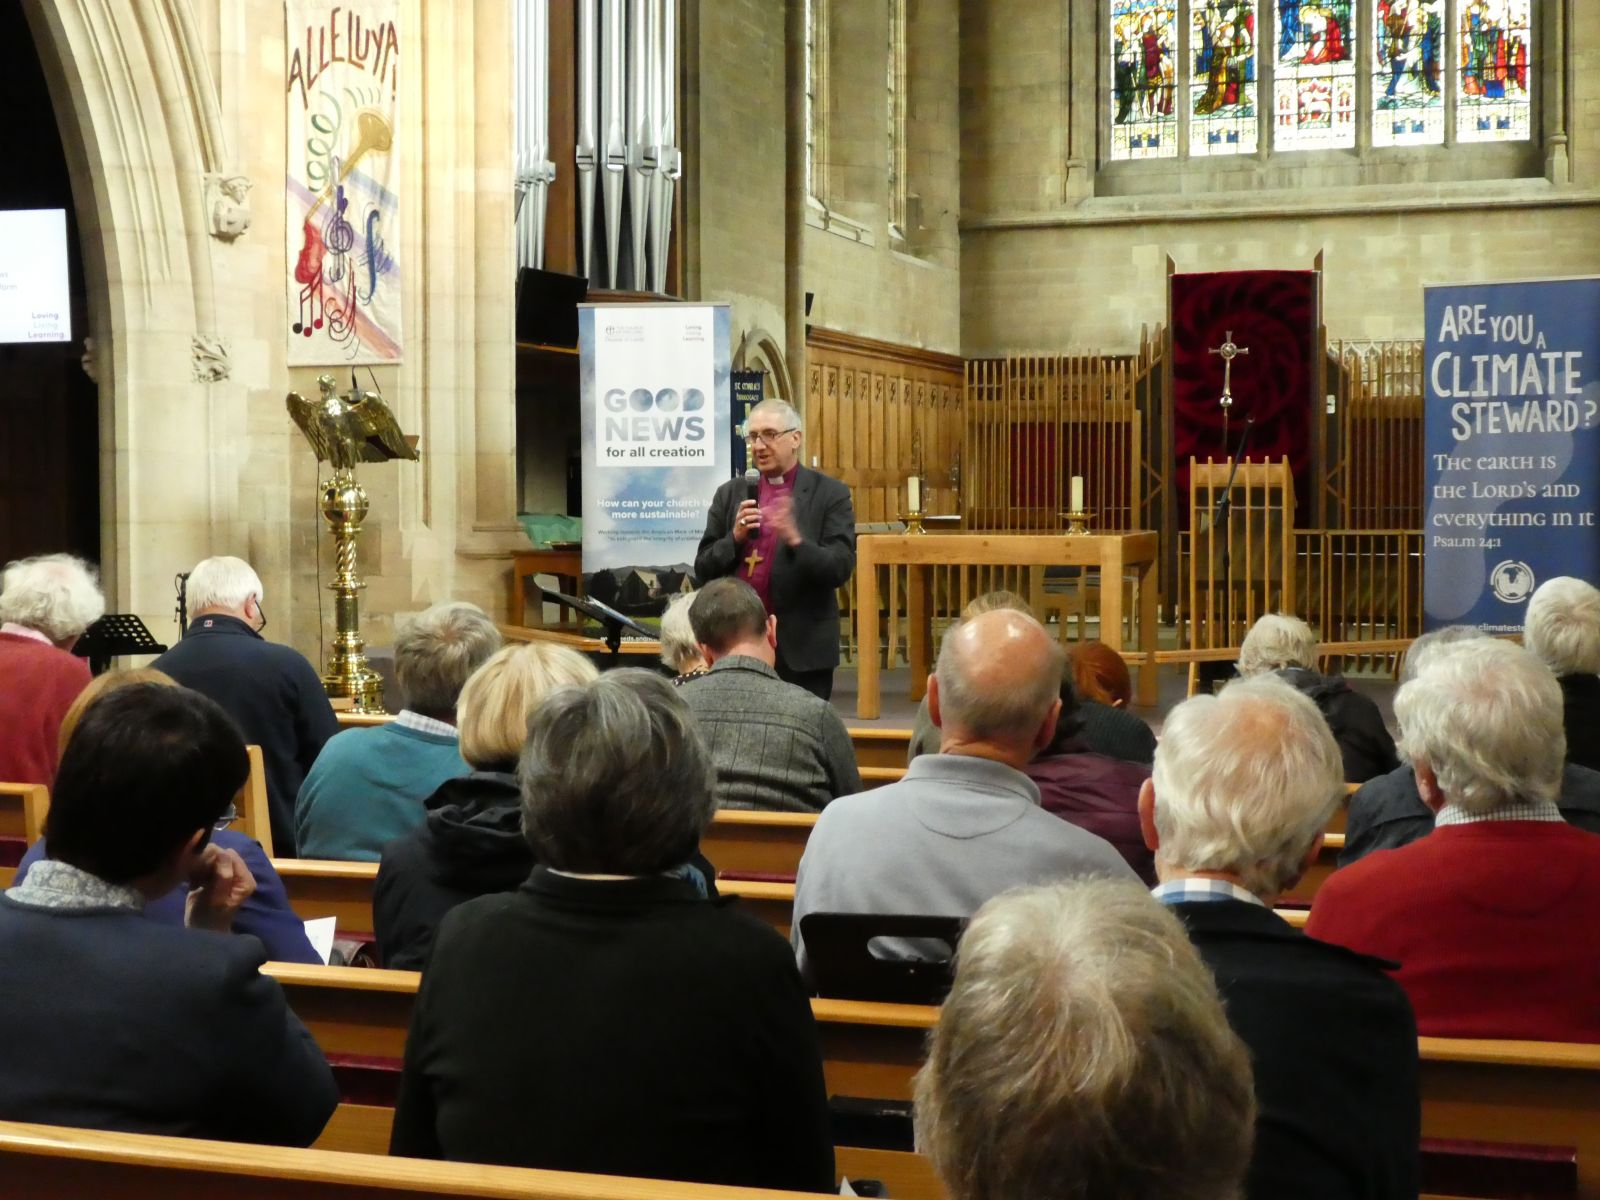 Bishop Paul Slater speaking to the audience